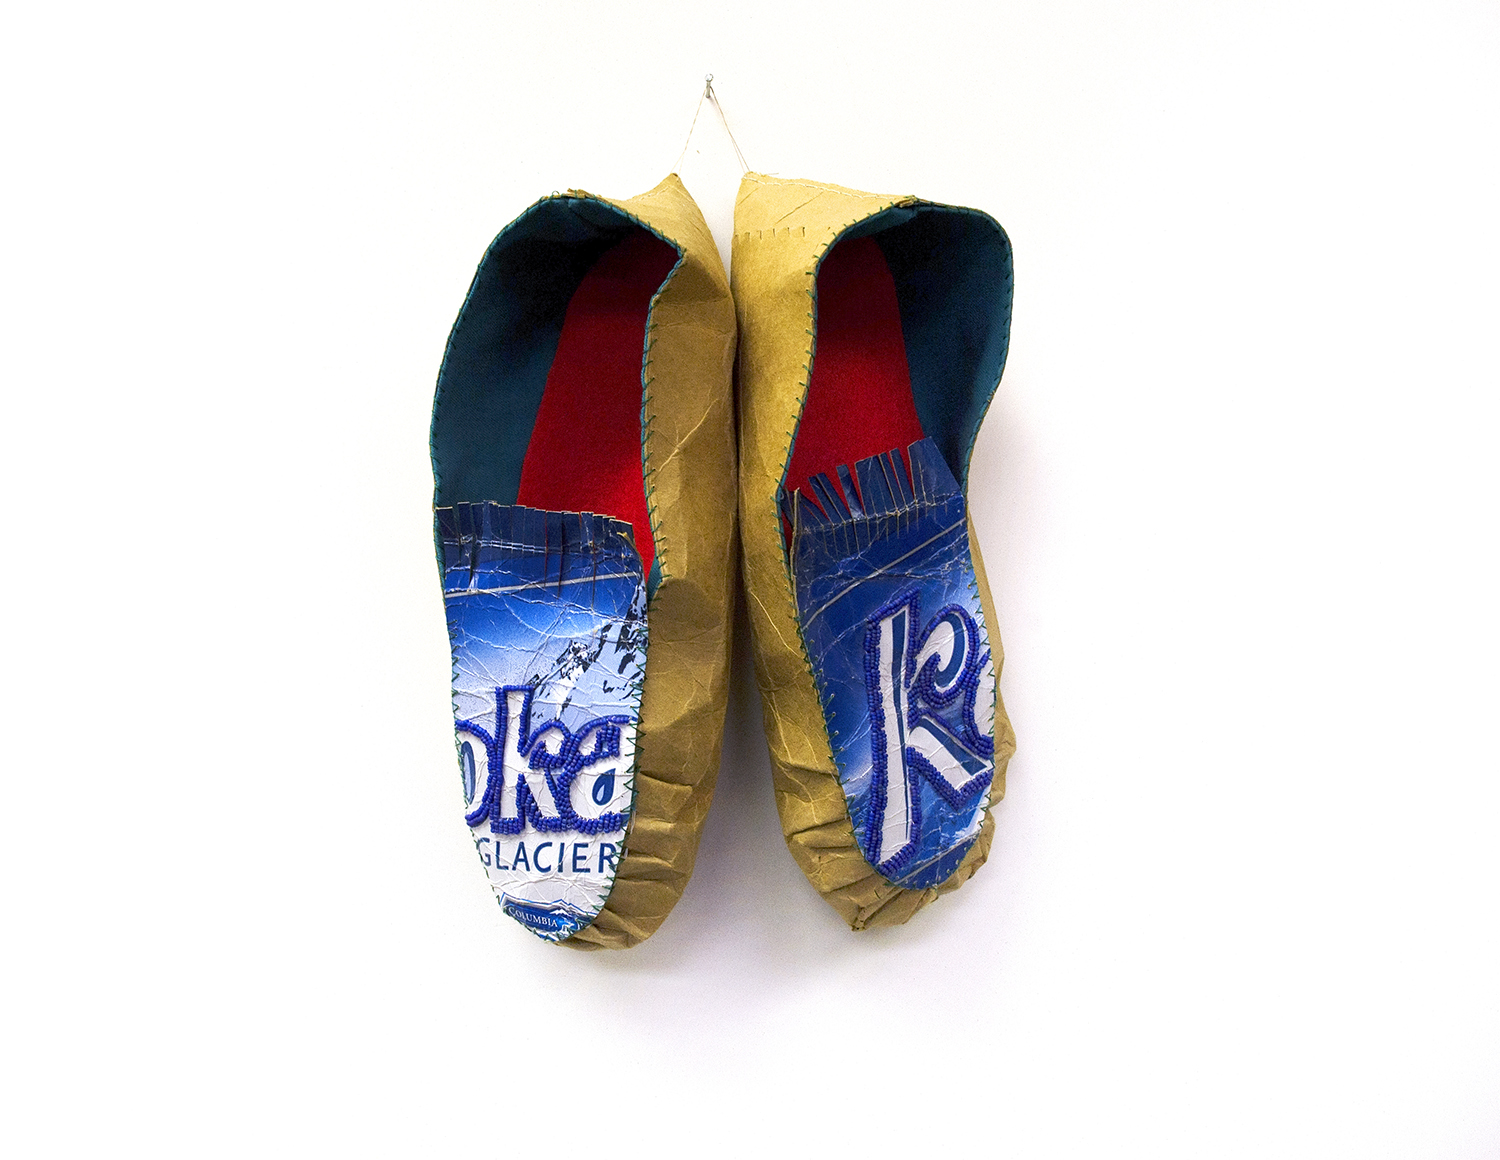 "Oka Moccasin, 2004, Charlene Vickers (Anishnabe), Beer box, glass beads, cotton fabric, felt, thread, 12"" x 9"" x 3.5"", $1,200"